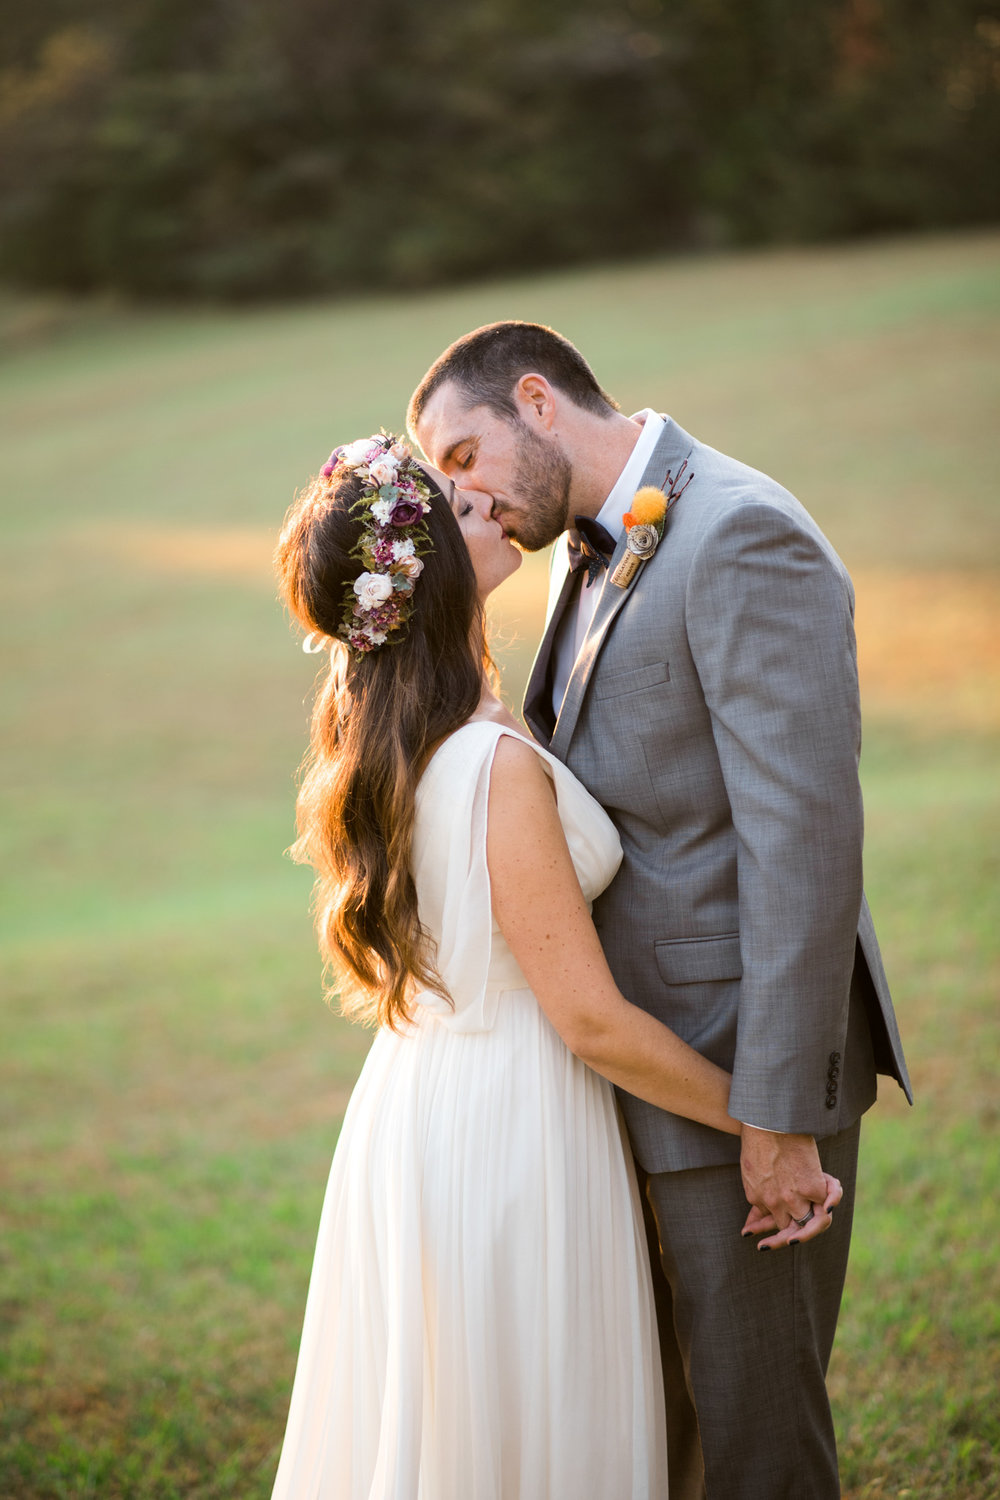 The_Trivium_Estate_Forest_VA_Wedding_Flower_Crown_boho_wedding_classic_wedding_Virginia_Wedding_photographer087.jpg